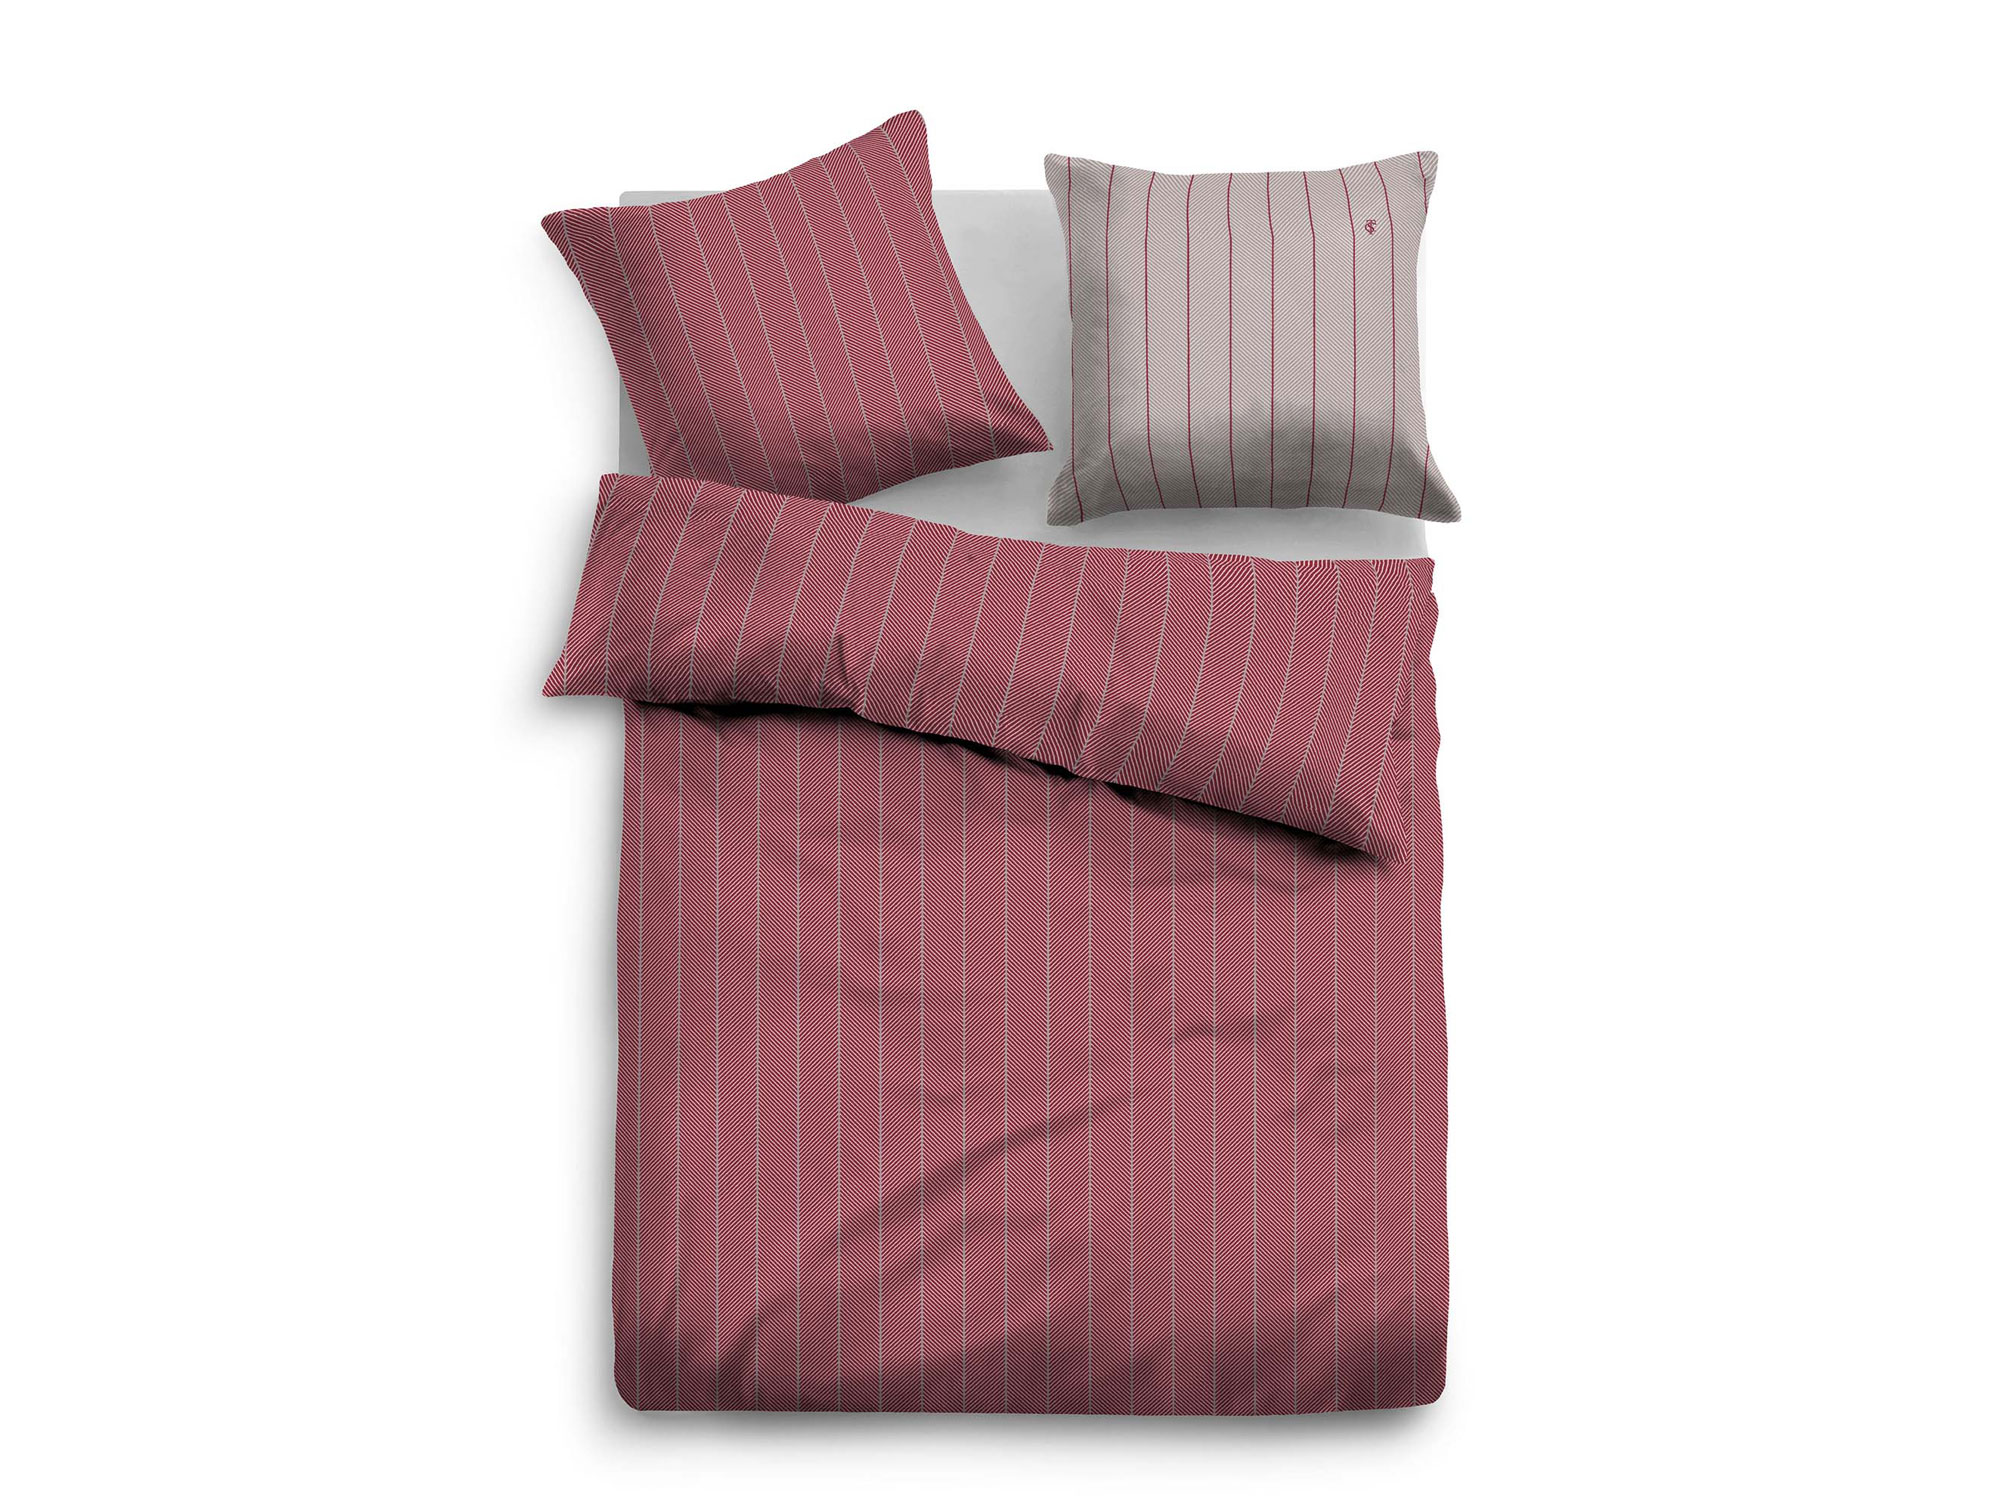 Tom Tailor Bettwäsche 135x200 Tom Tailor Bettwäsche Satin Bed Linen 135x200 4380x80 Cm